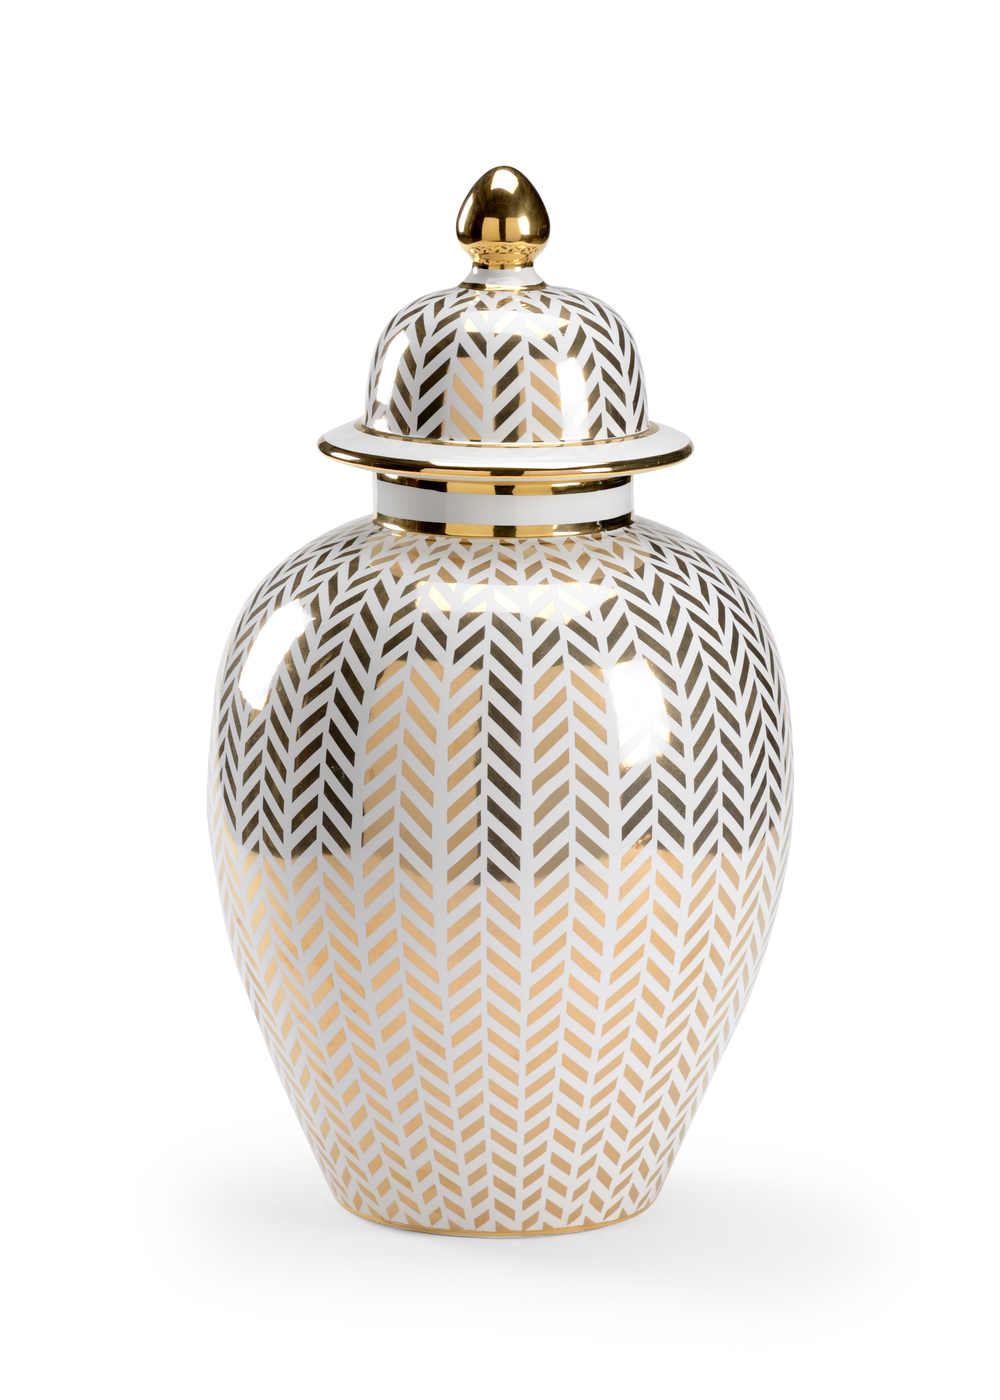 Chelsea House - Herringbone Covered Urn